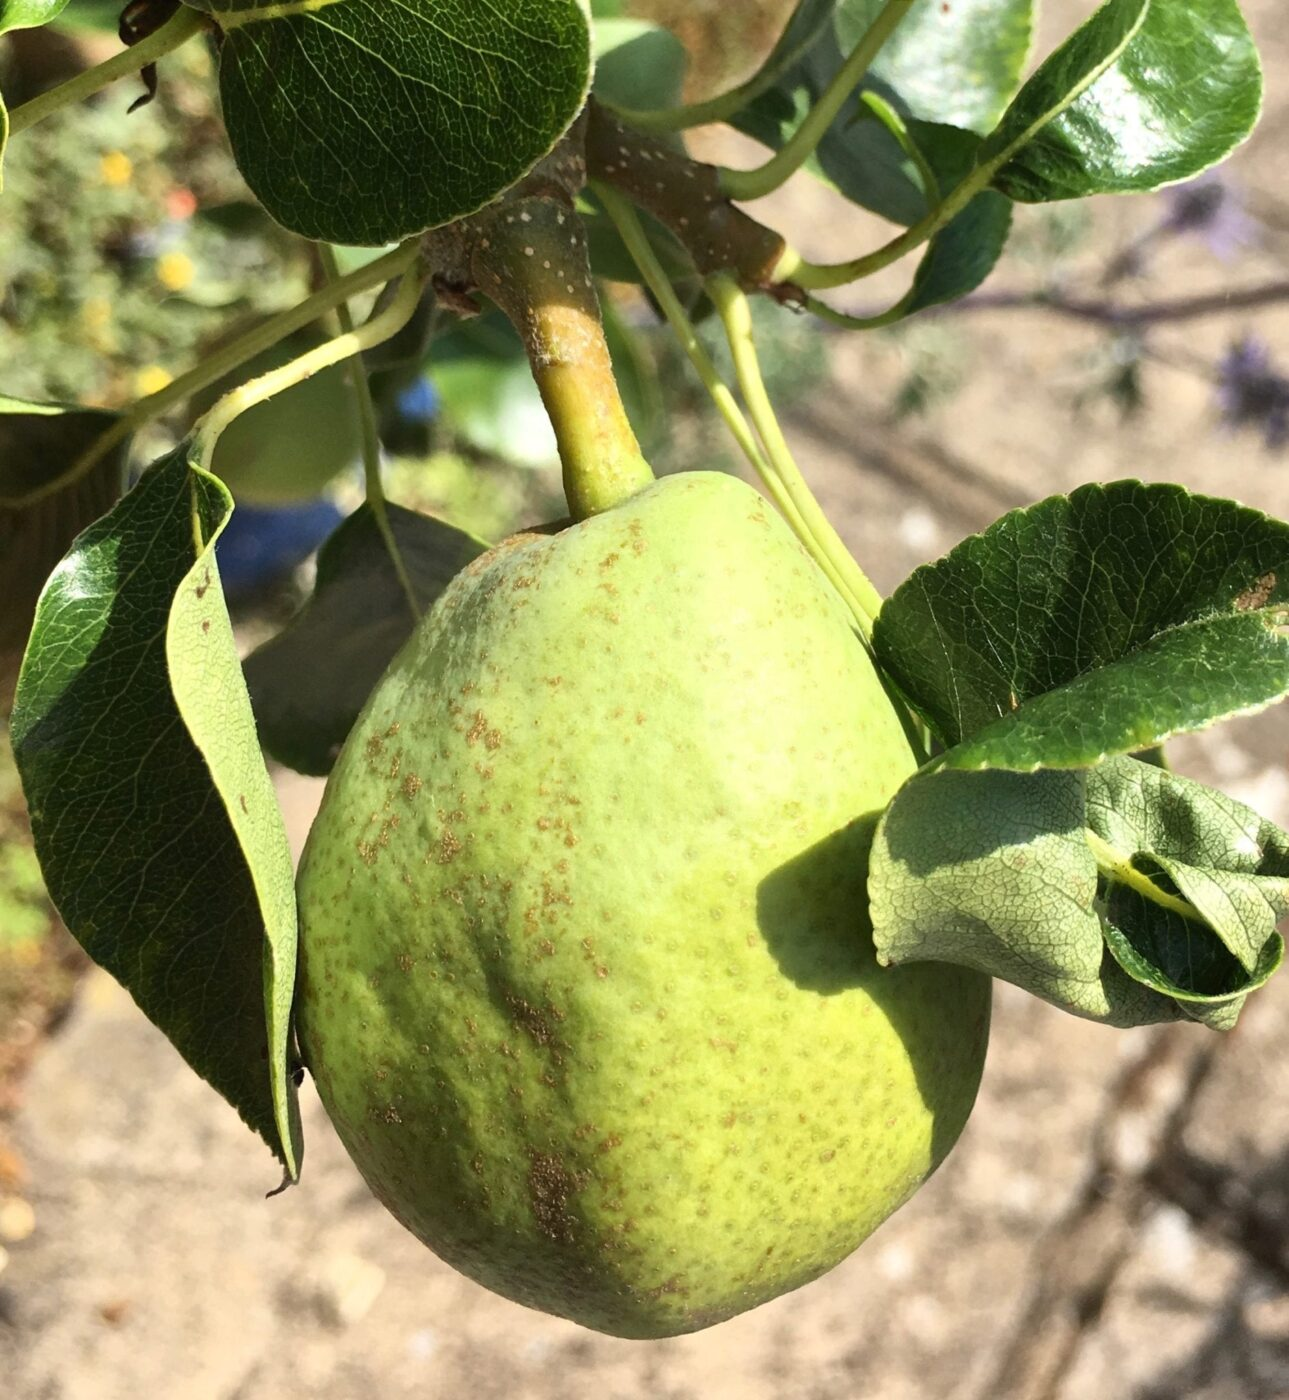 Common Pear fruit